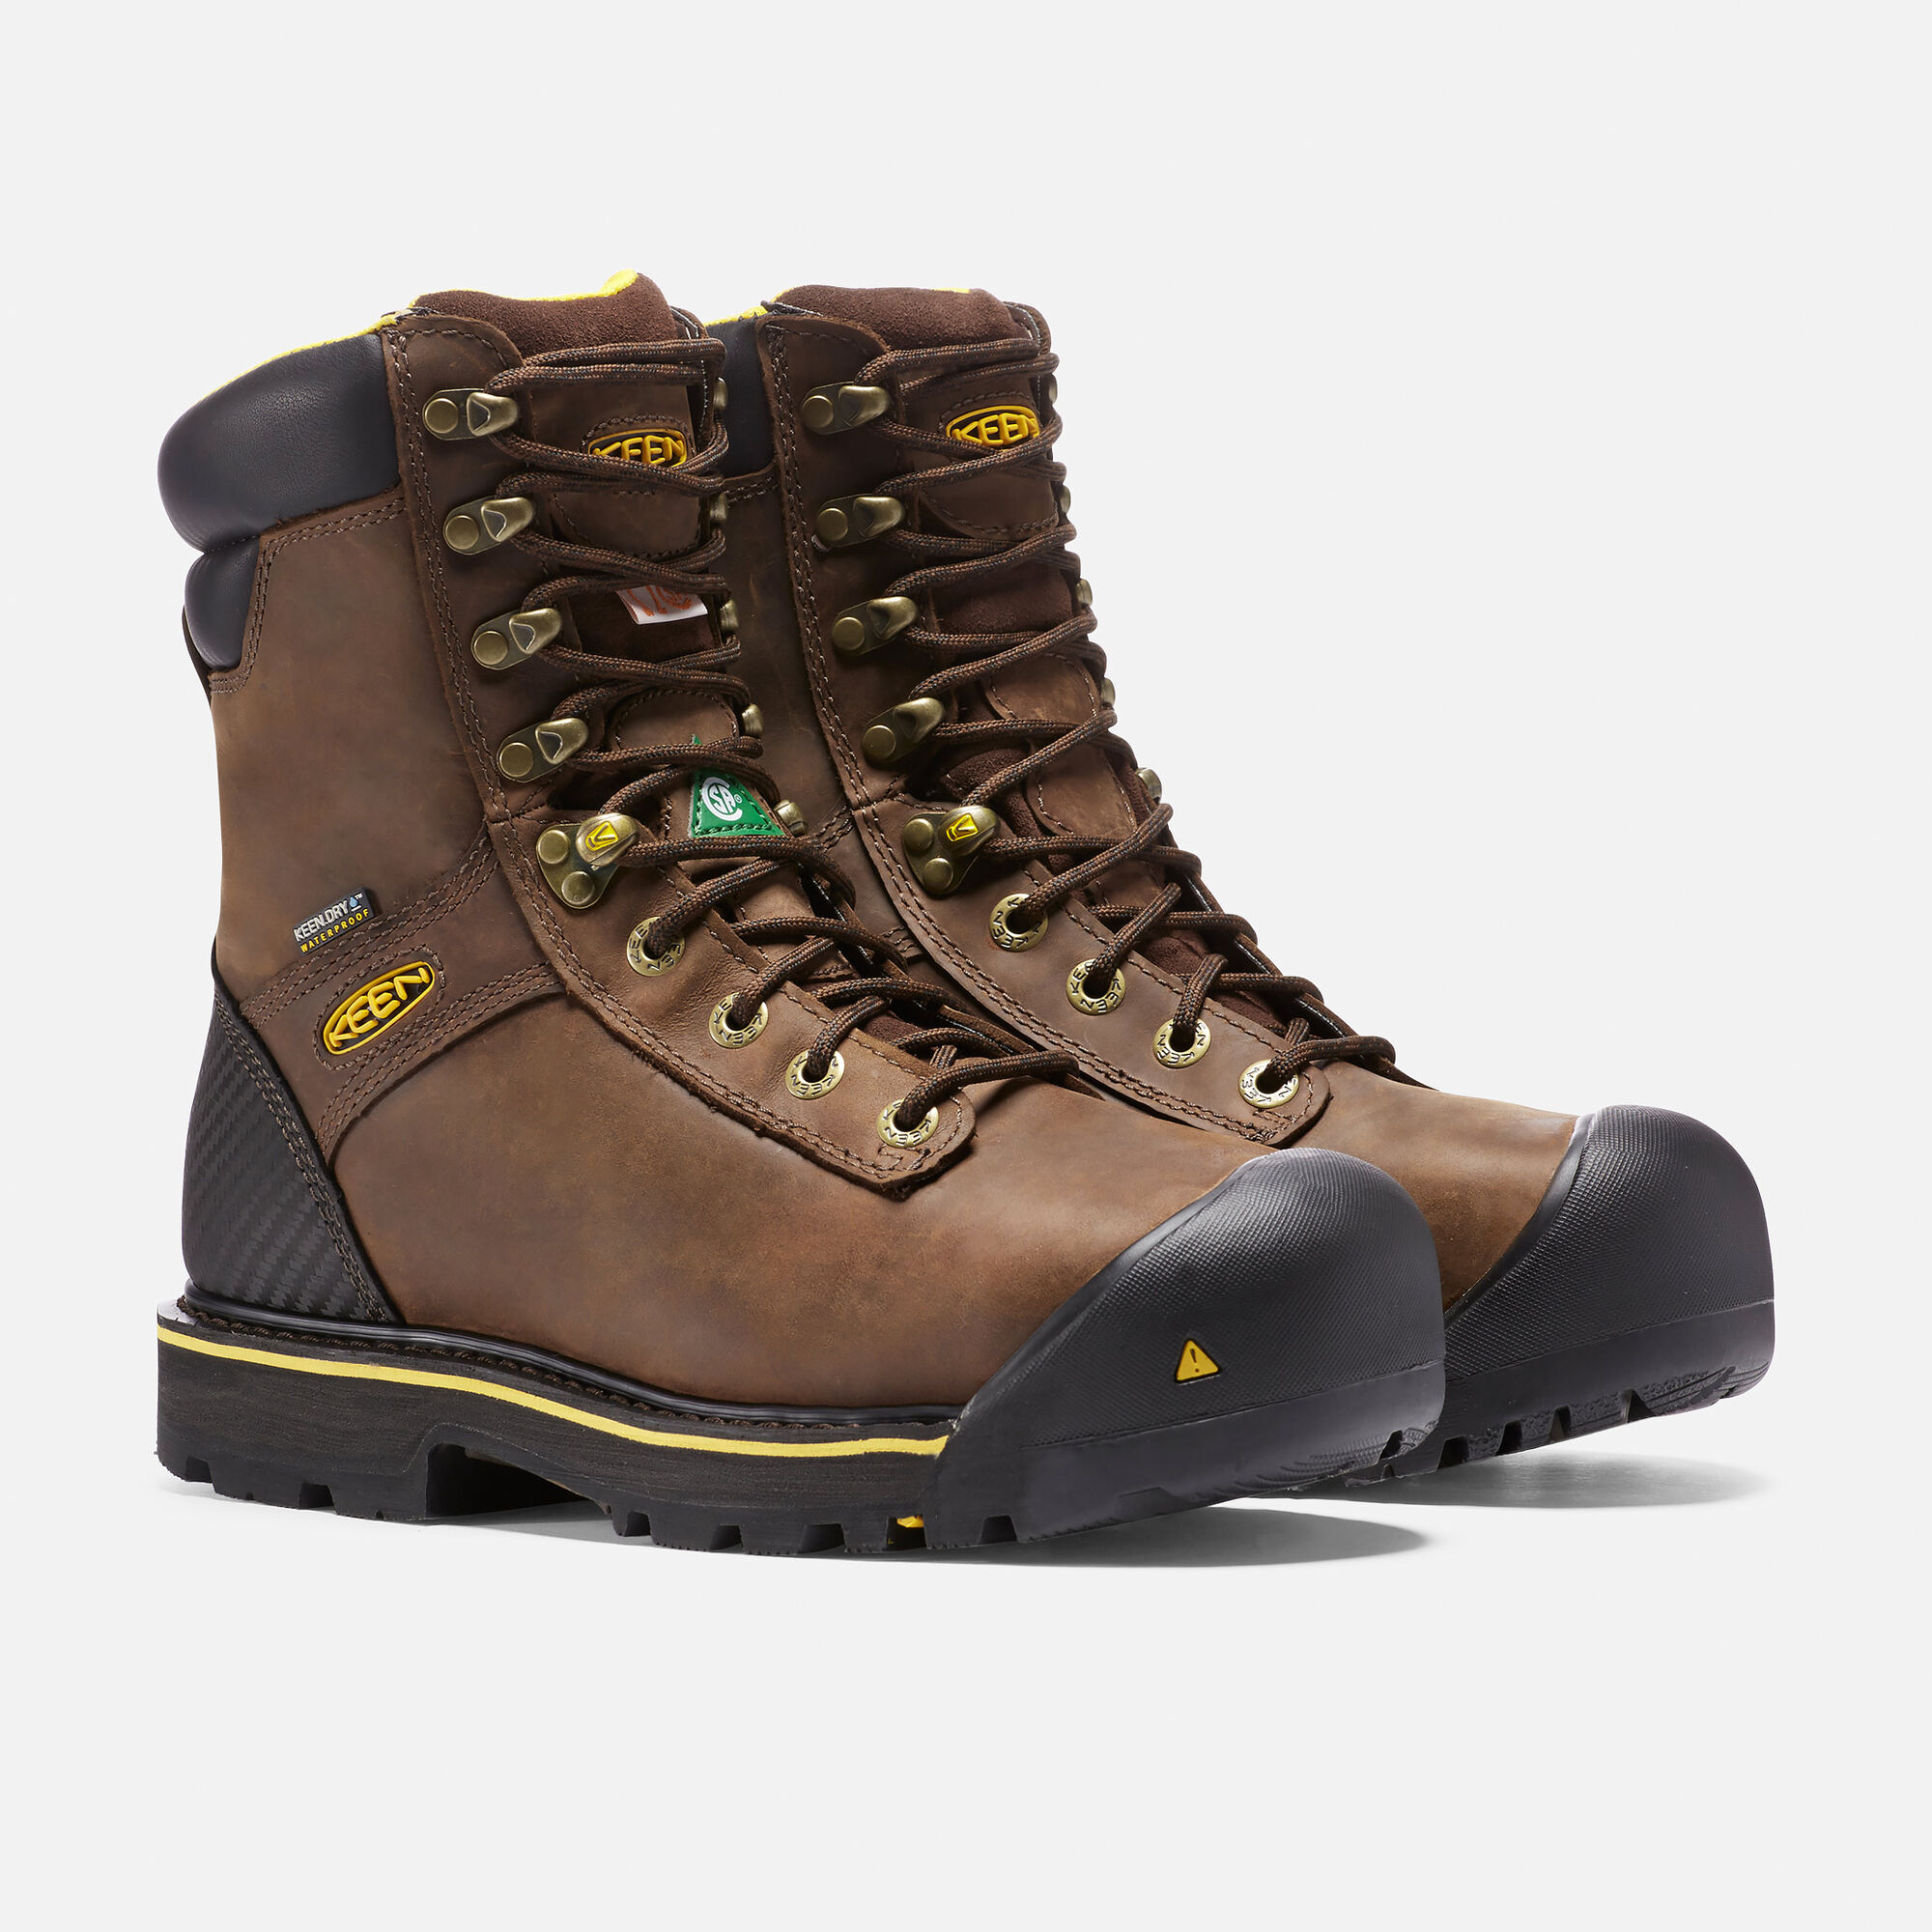 613a39deb13 Men's CSA Abitibi (Steel Toe) - The ultimate tool for your feet ...